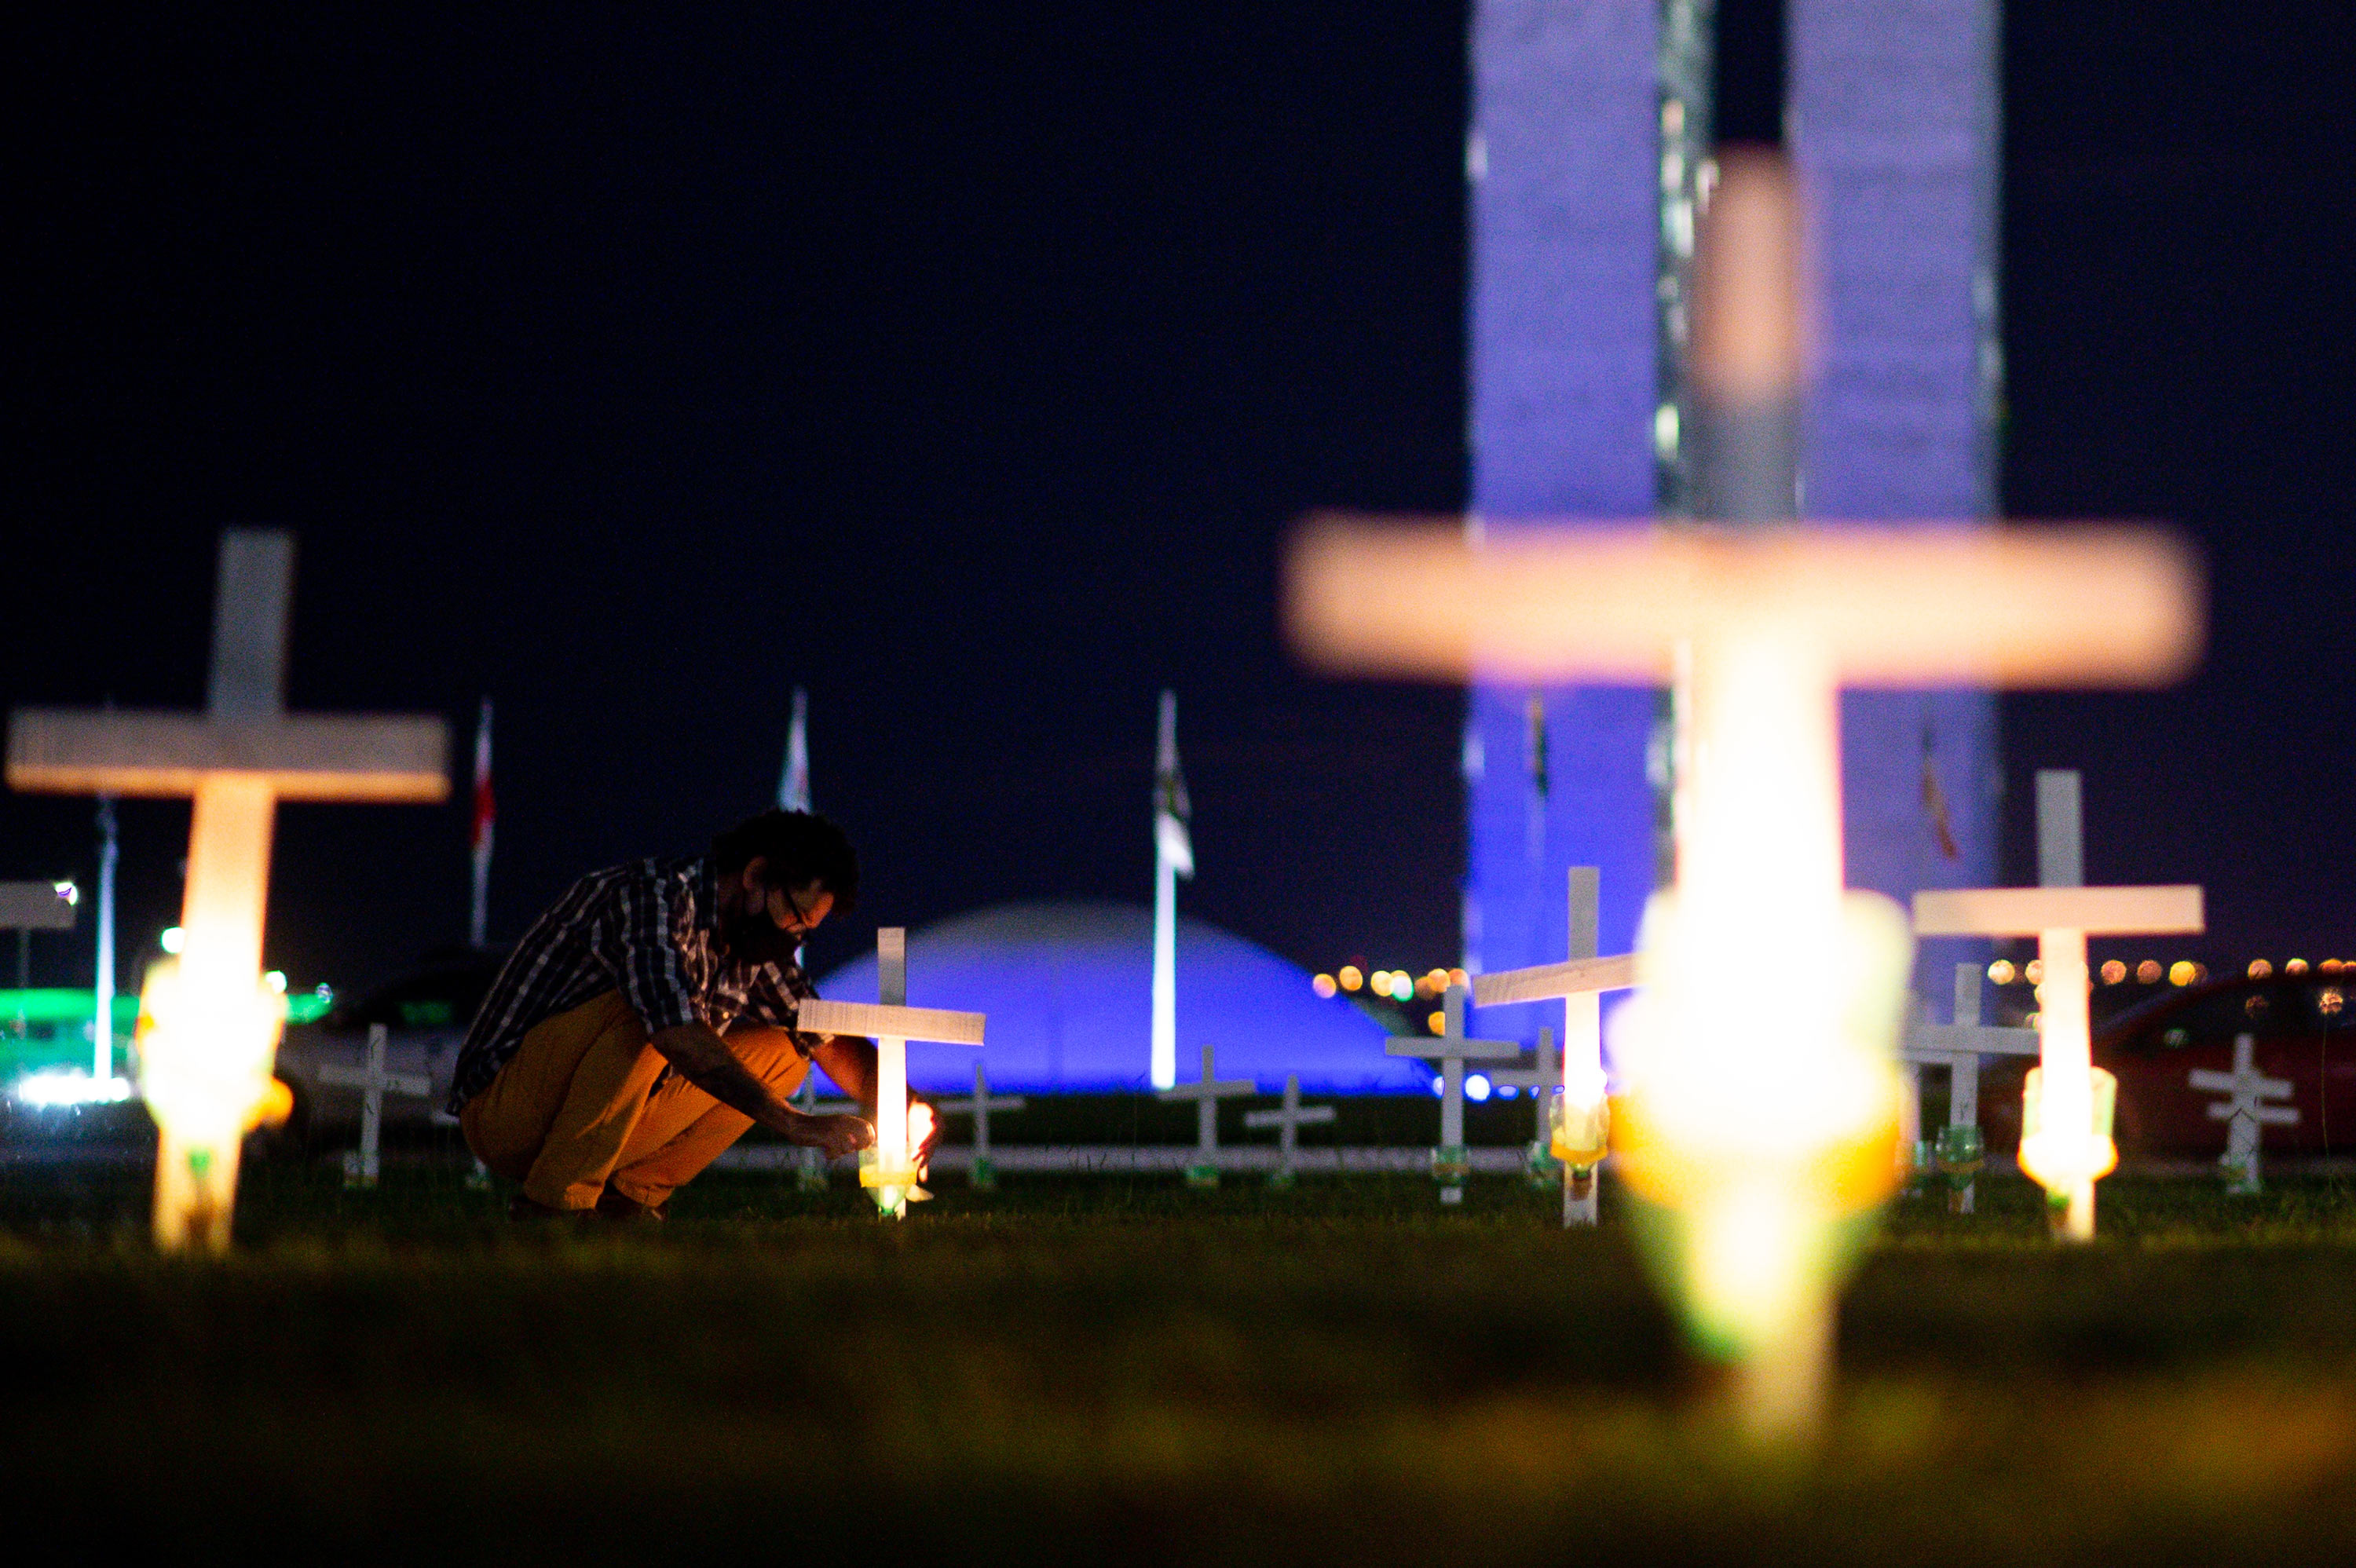 A person lights a candle in honor of the victims of the COVID-19 pandemic at the Brazilian Congress on April 27 in Brasilia, Brazil.